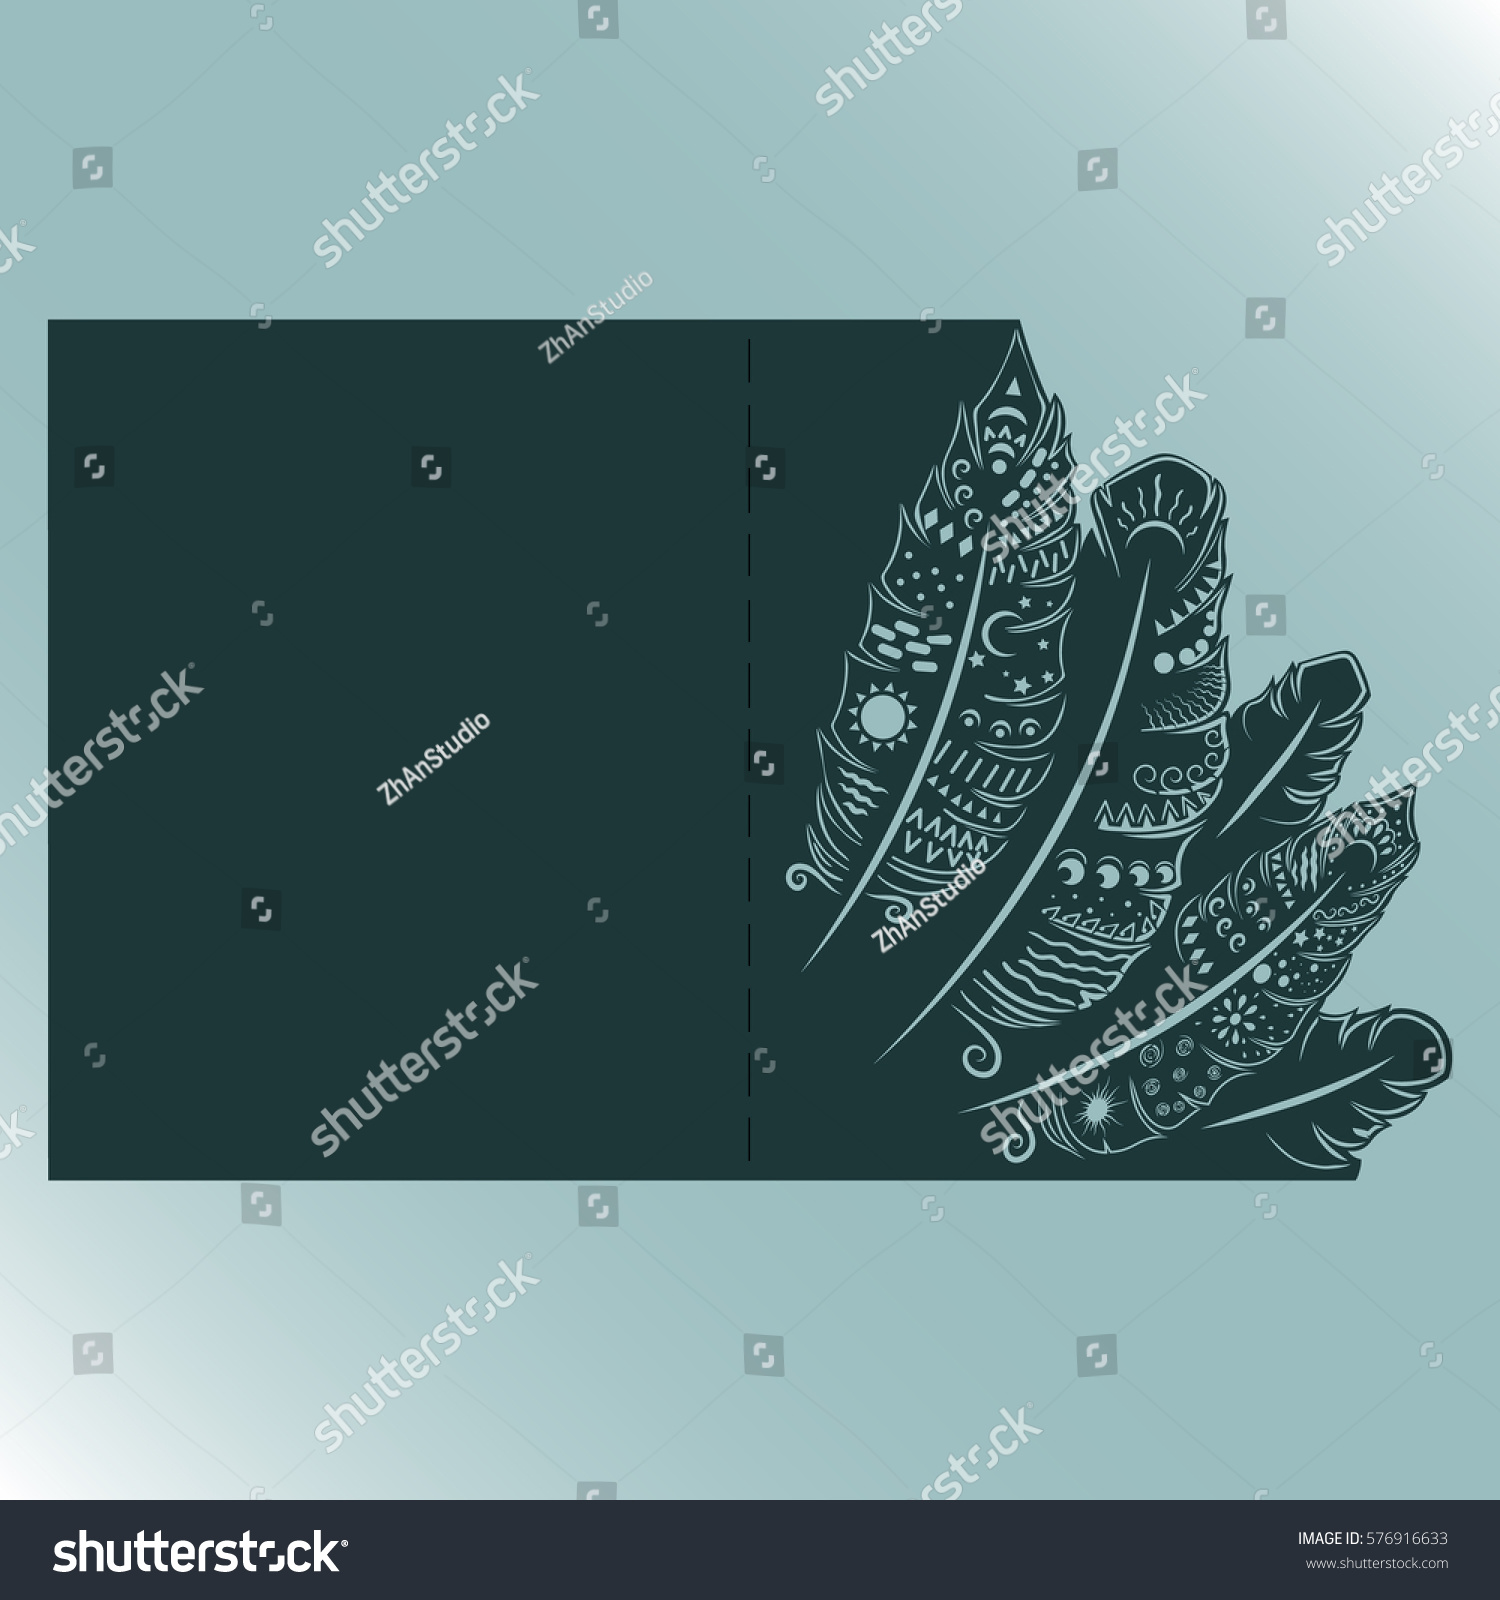 Wedding Invitation Greeting Card Feather Envelope Stock Photo (Photo ...